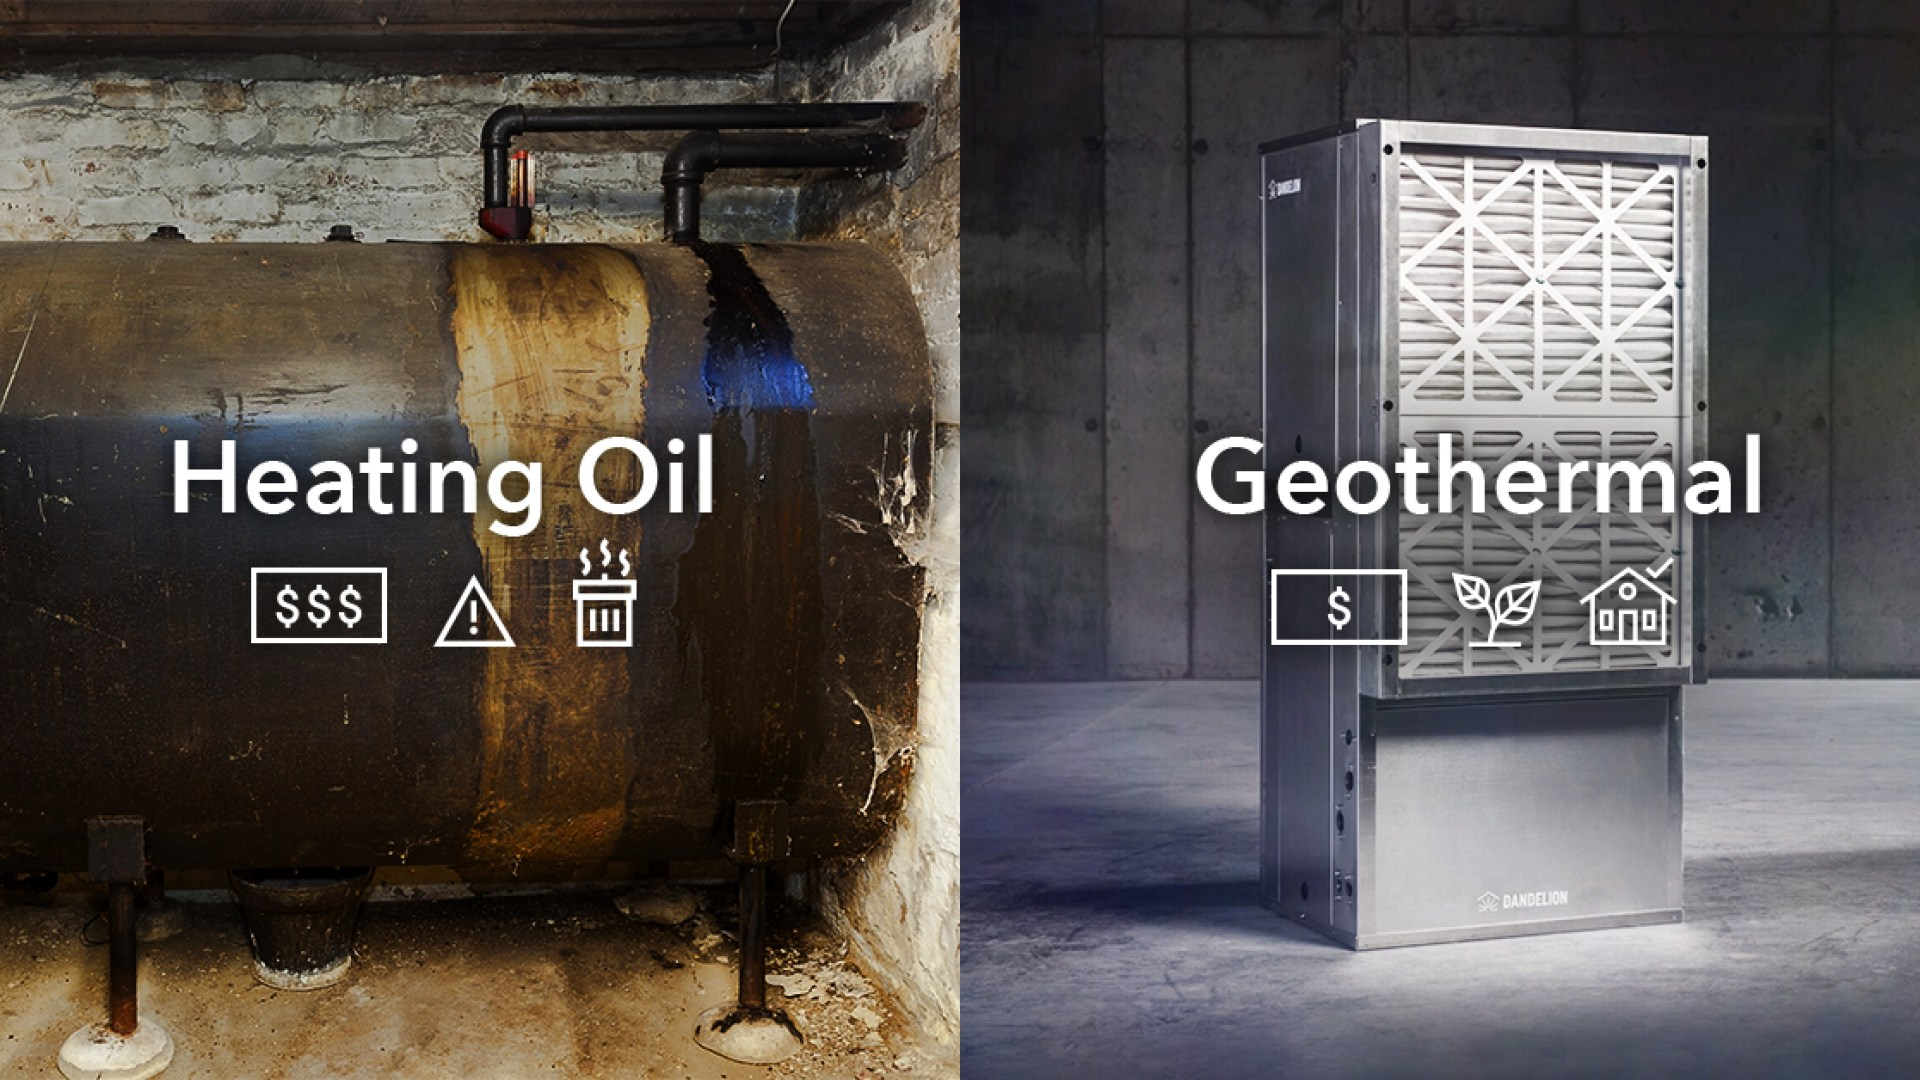 Alphabet X lab spinoff Dandelion raises $16 million for home geothermal systems